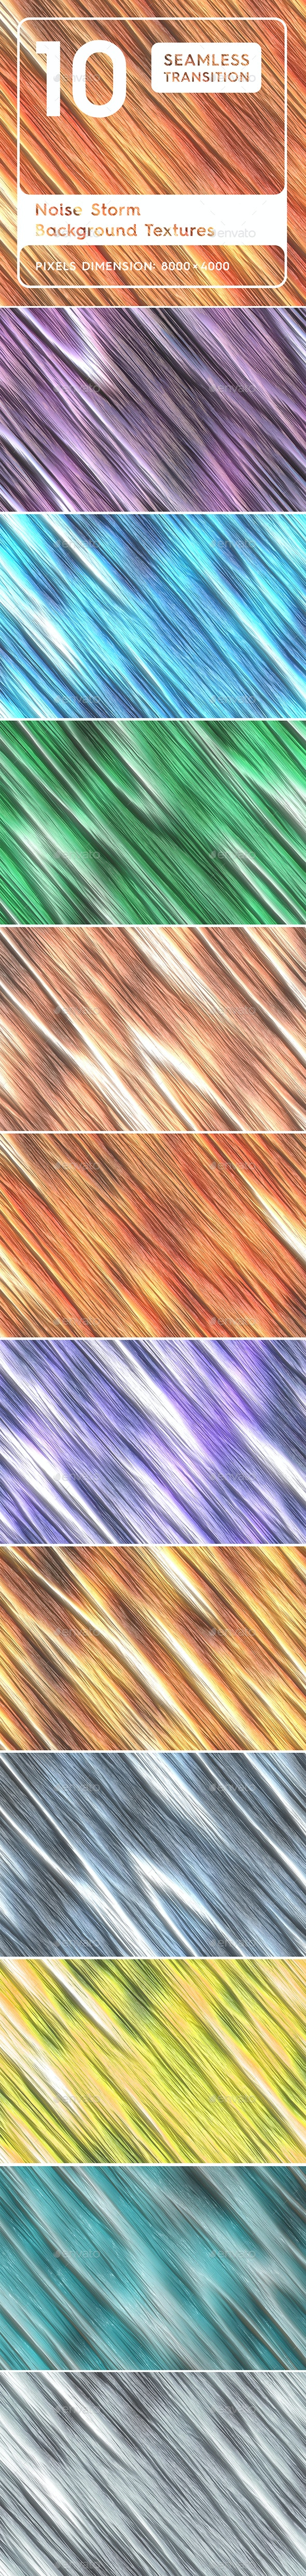 10 Noise Storm Background Textures. Seamless Transition. - Abstract Backgrounds